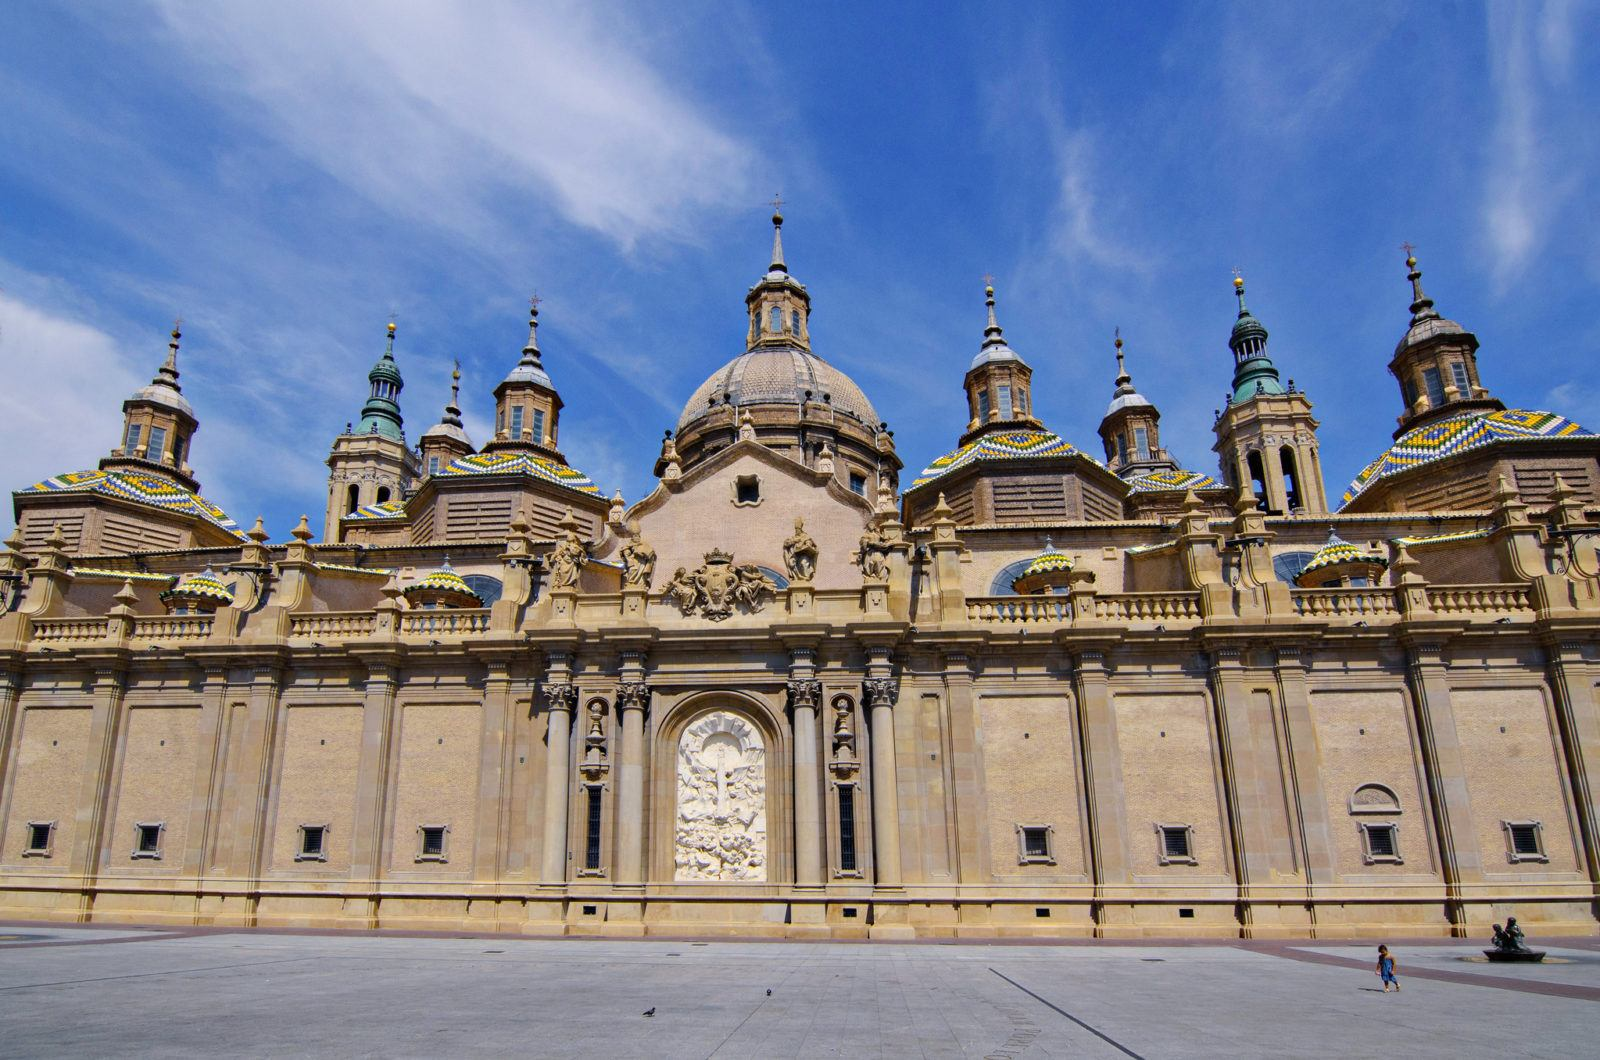 Weekend trip to Zaragoza, Spain with a sample quick itinerary9